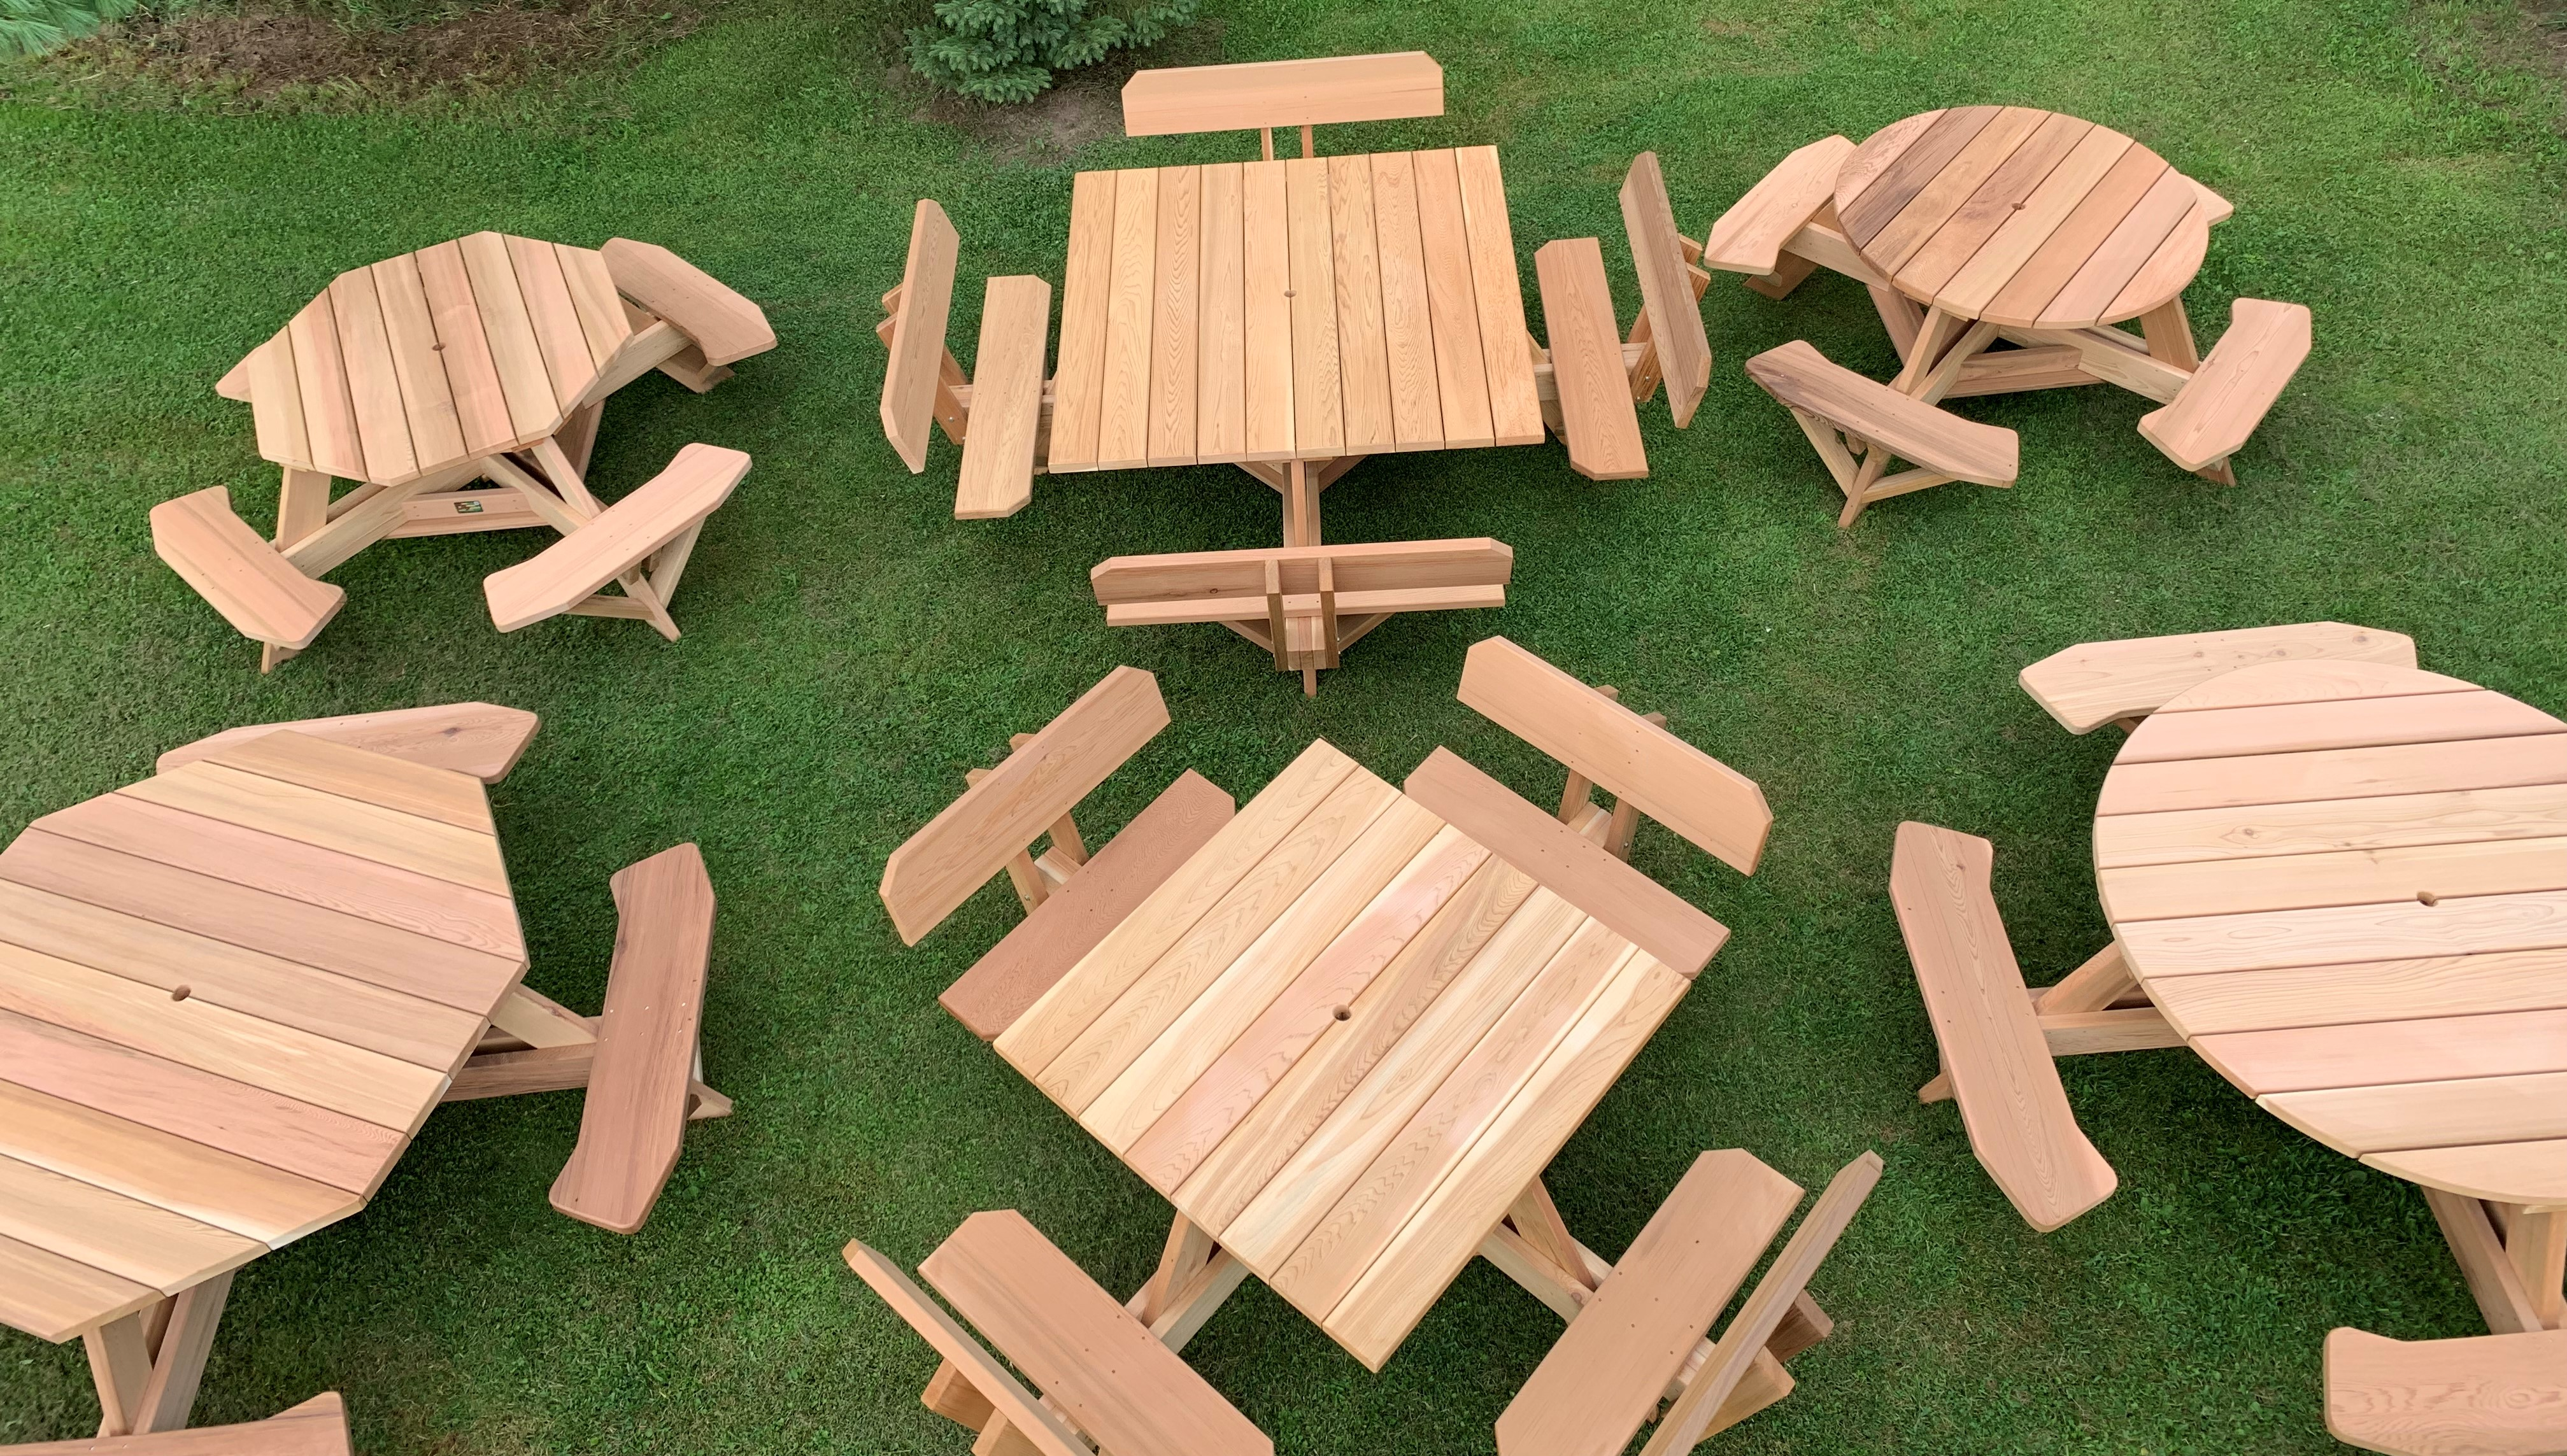 Dan S Outdoor Furniture Handcrafted Cedar Furniture For The Outdoors